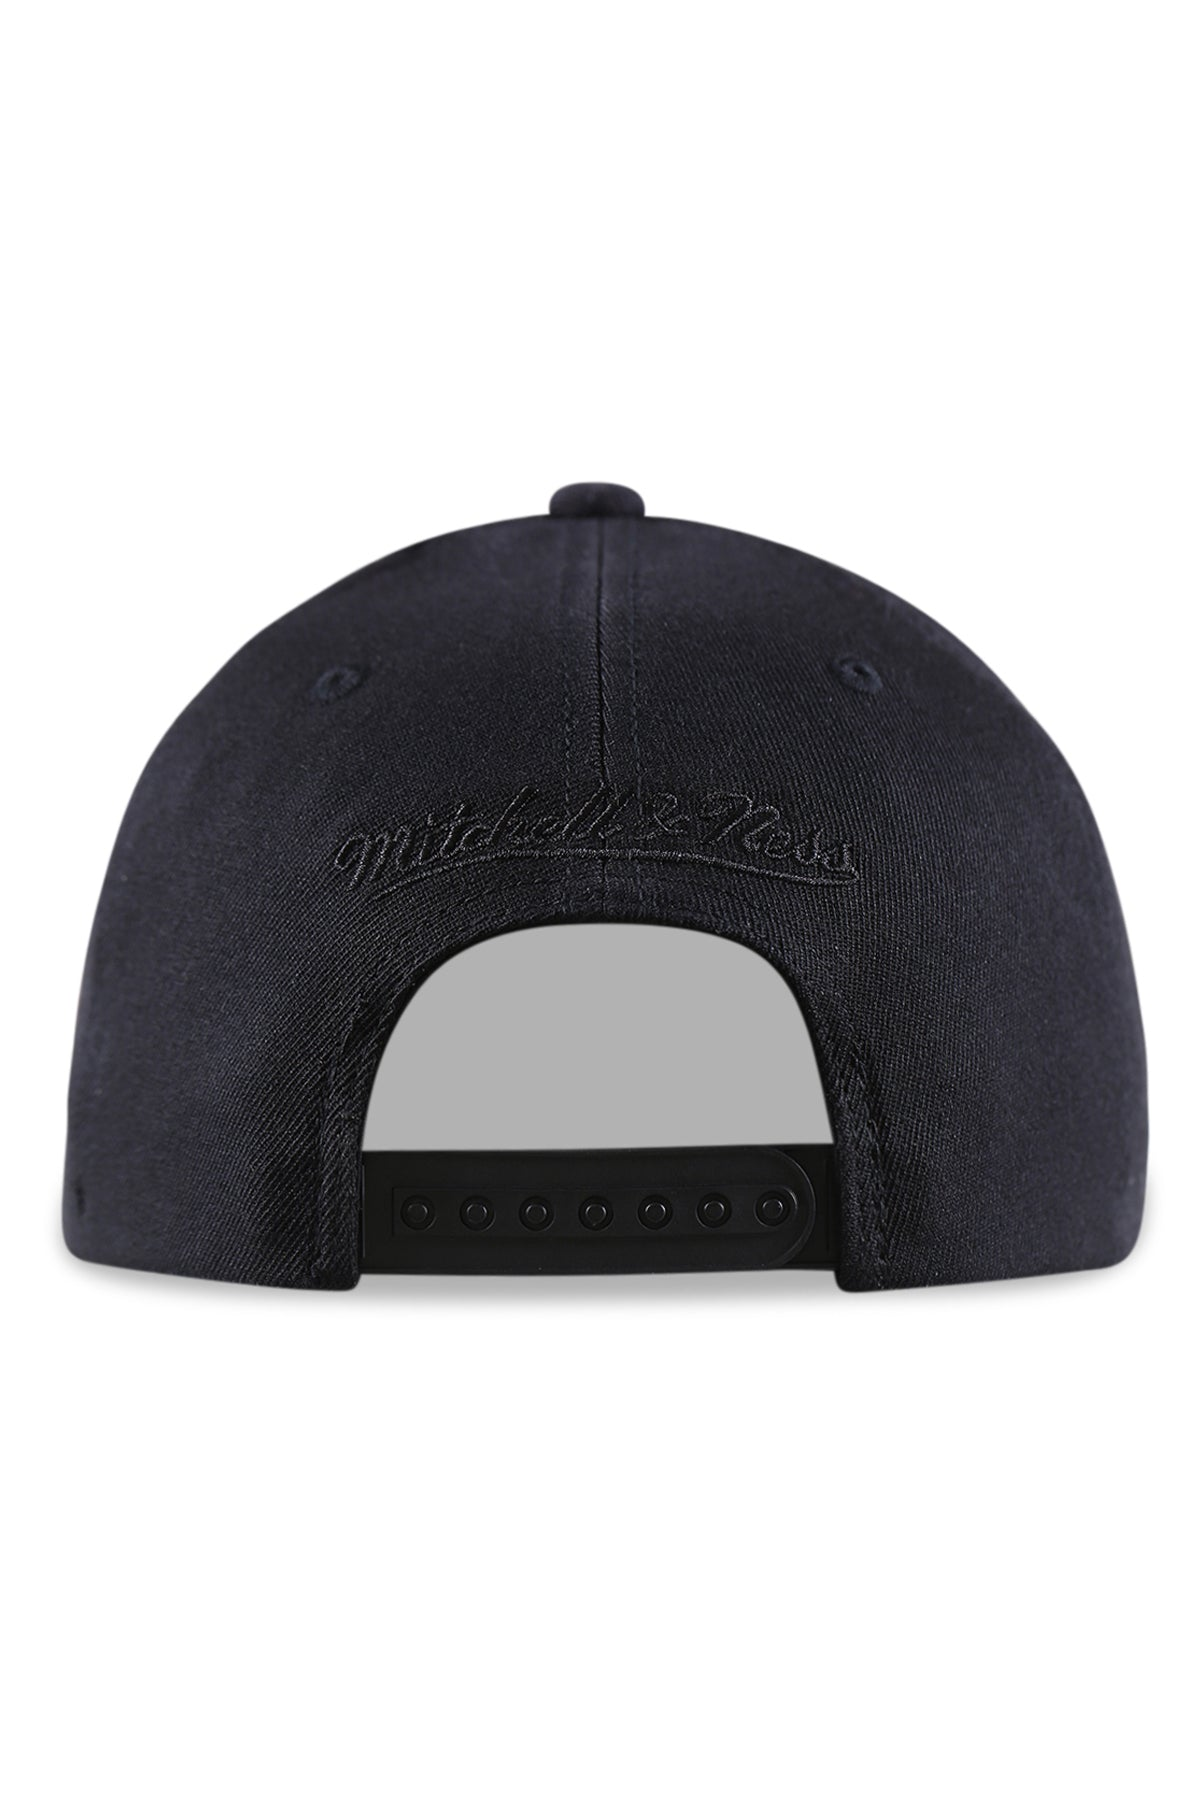 M&N Nets Team Colour Logo Pinch Panel Black Snapback Back